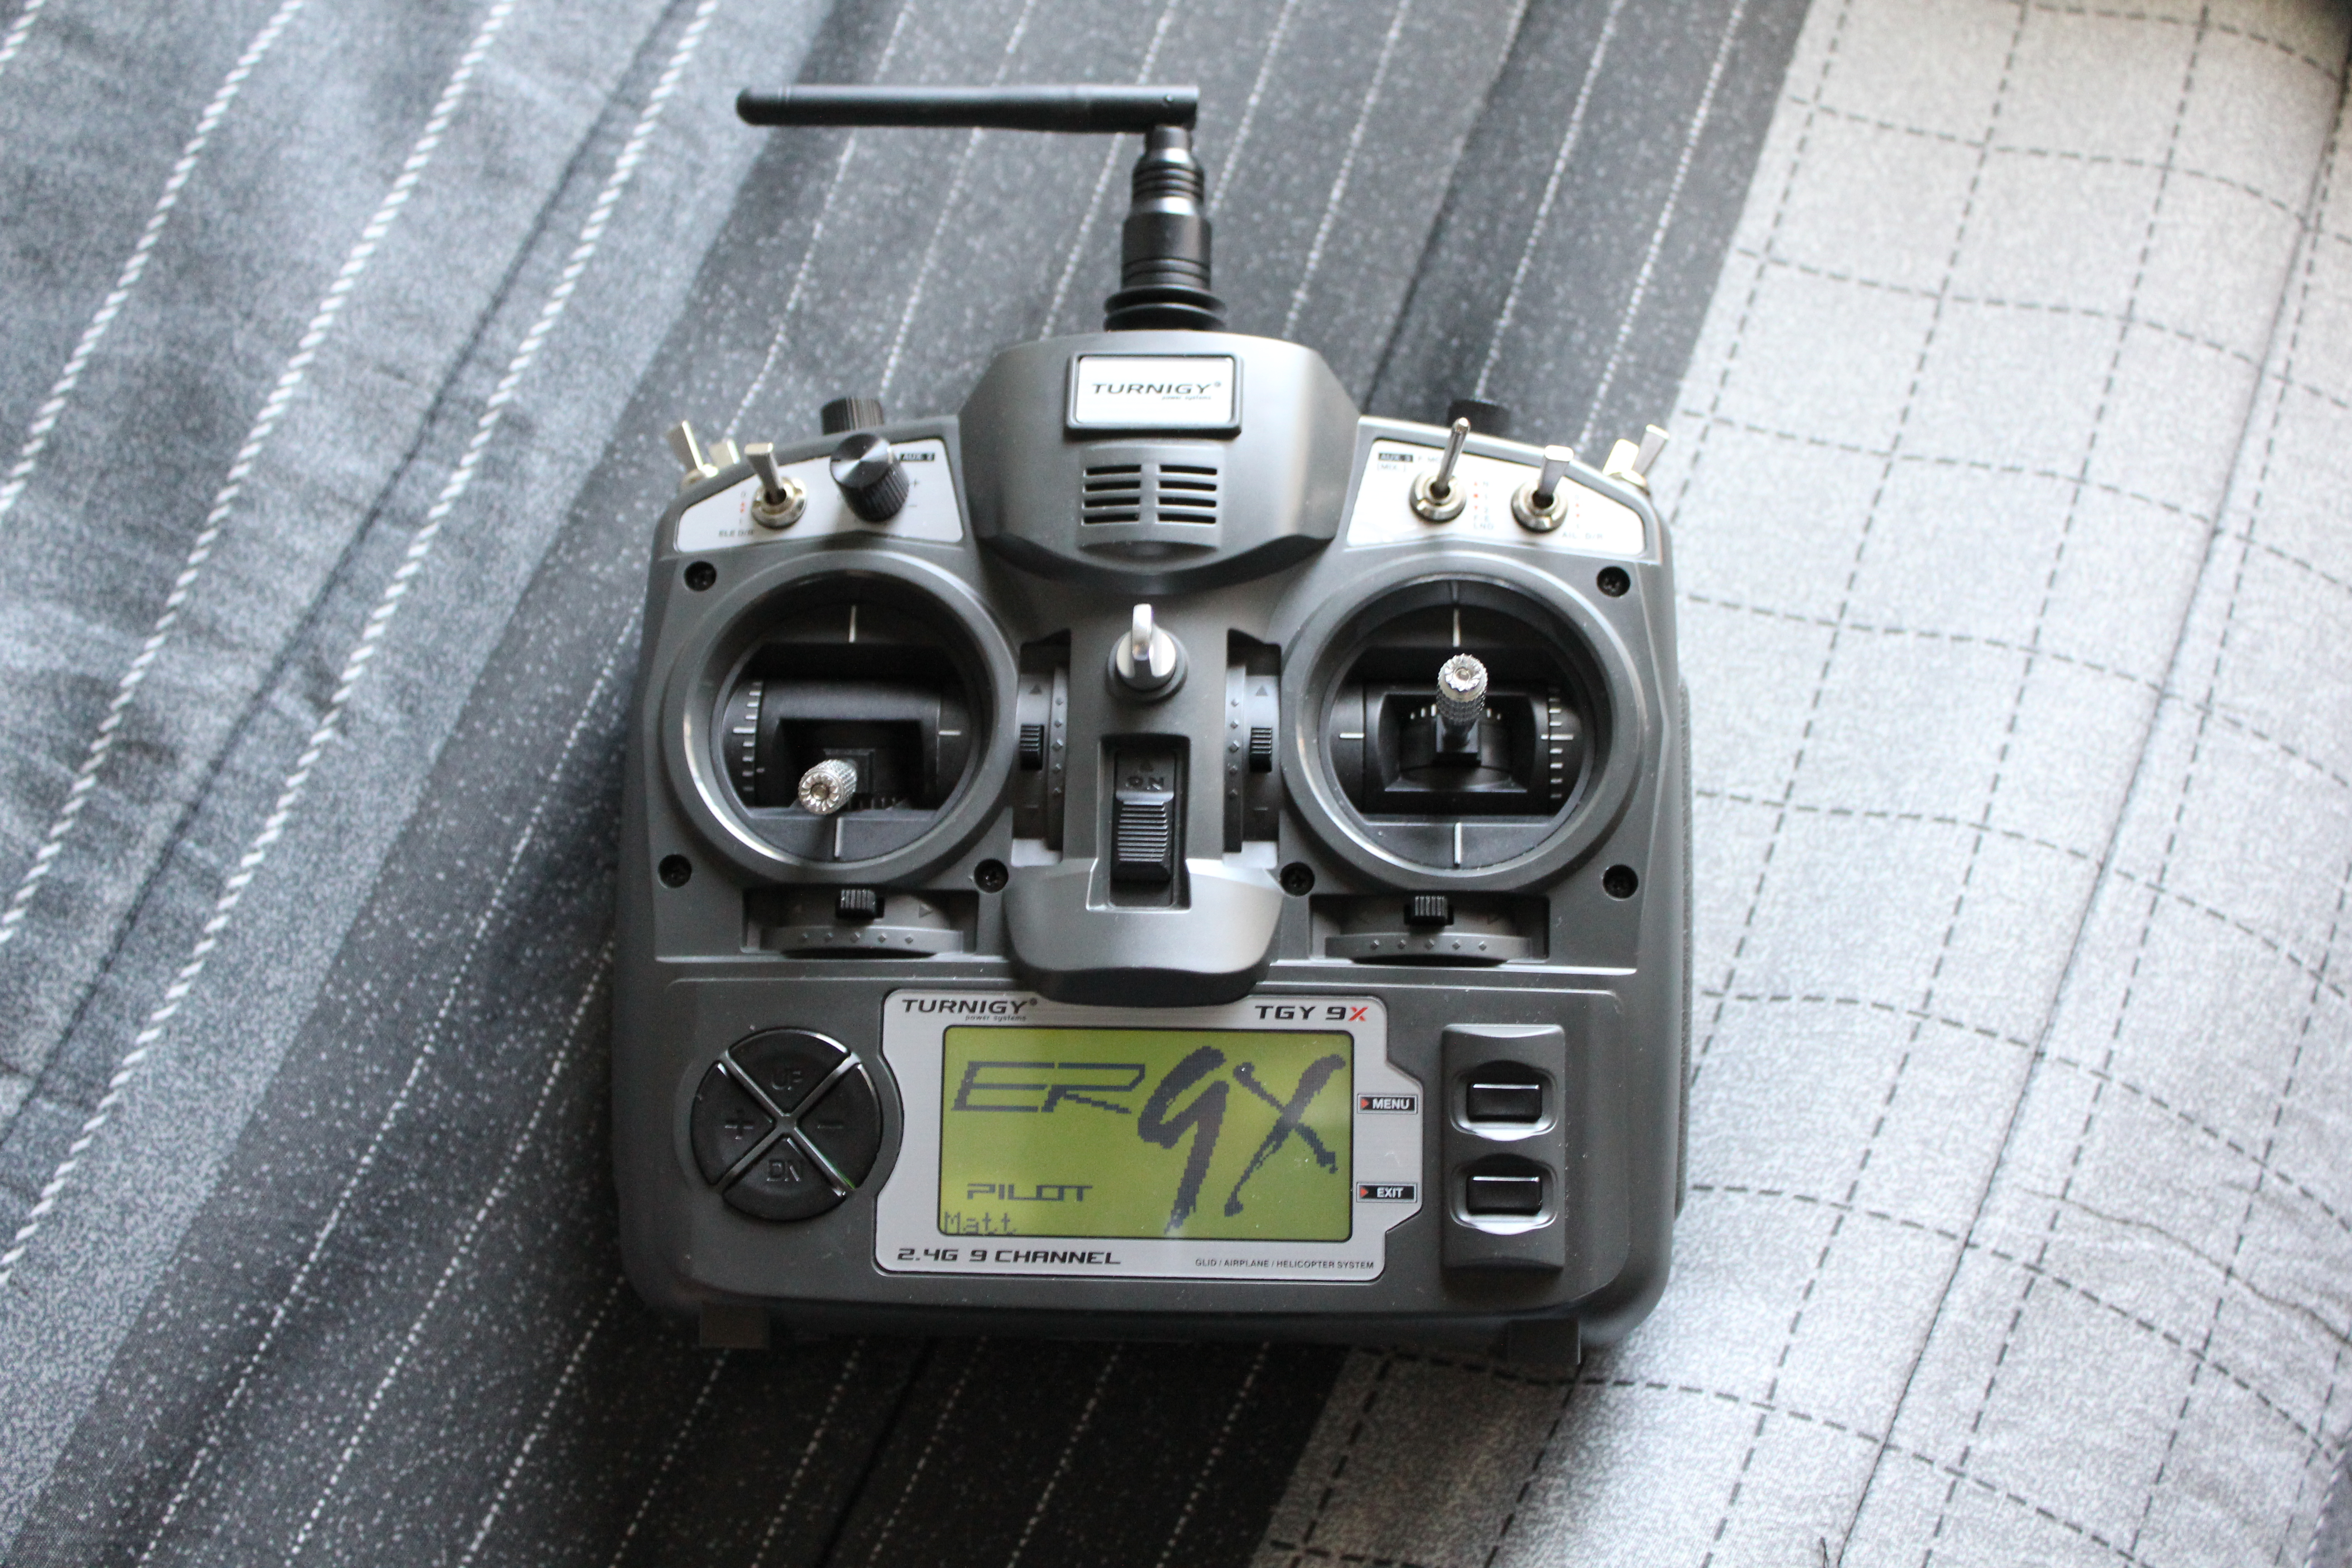 Transform a cheap RC Transmitter with Custom Firmware